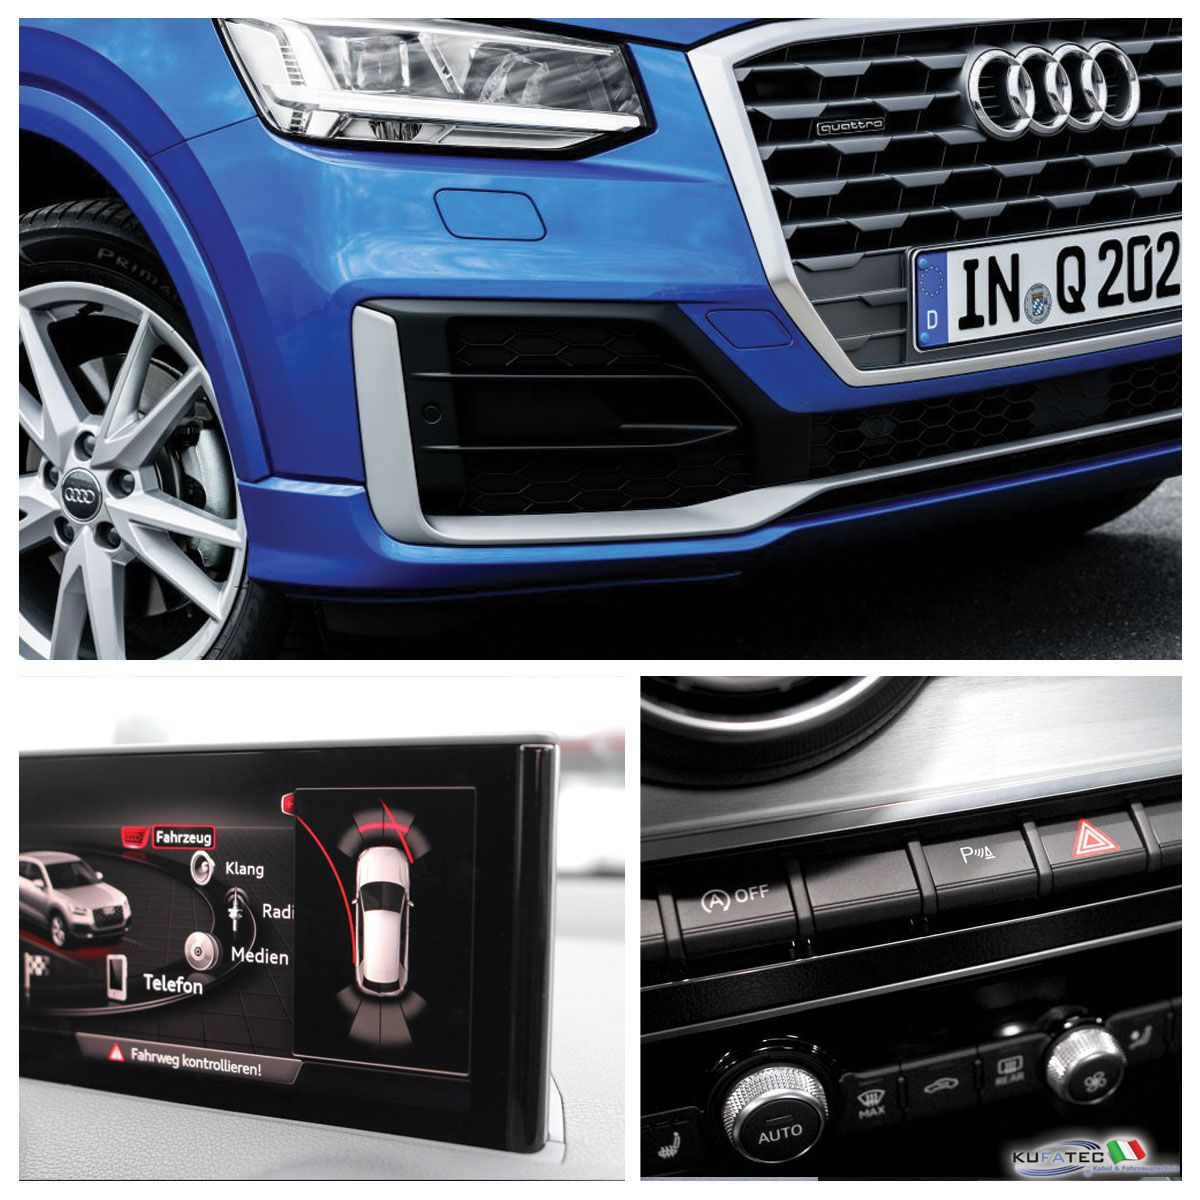 aps audi parking system plus ant grafico retrofit audi q2 ga navistore. Black Bedroom Furniture Sets. Home Design Ideas